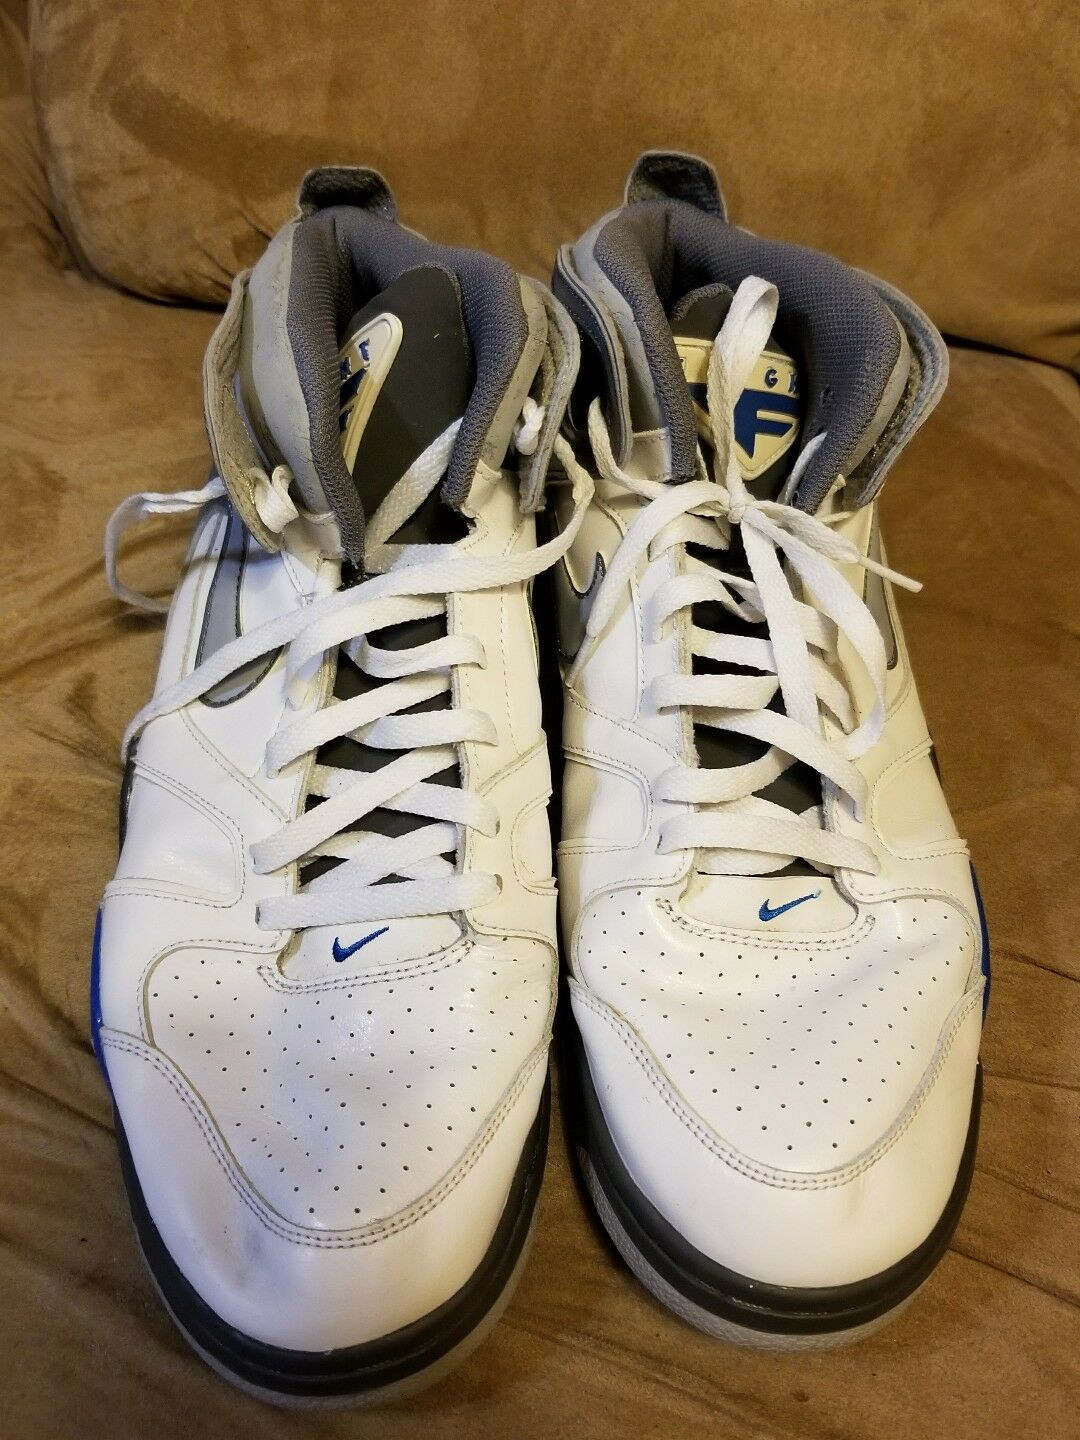 Nike Men's  Air Flight Classic  White Basketball shoes Size 14 New